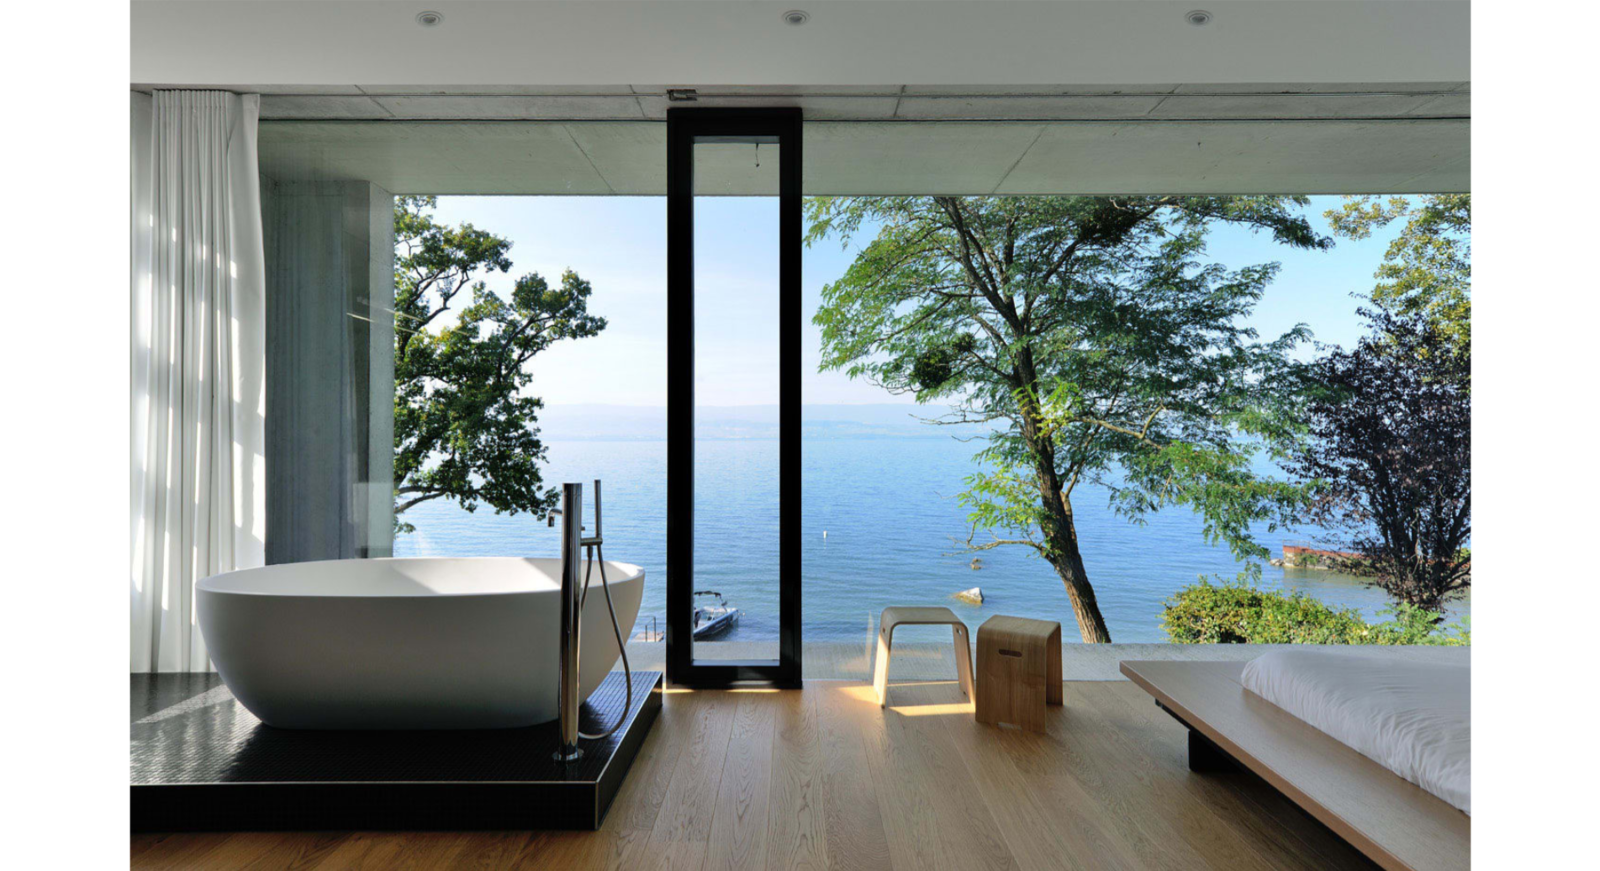 Light Hardwood Floor, Bed, Chair, Ceiling Lighting, Freestanding Tub, Concrete Wall, Tile Counter, Windows, Sliding Window Type, and Metal The bathroom  House on the Lake